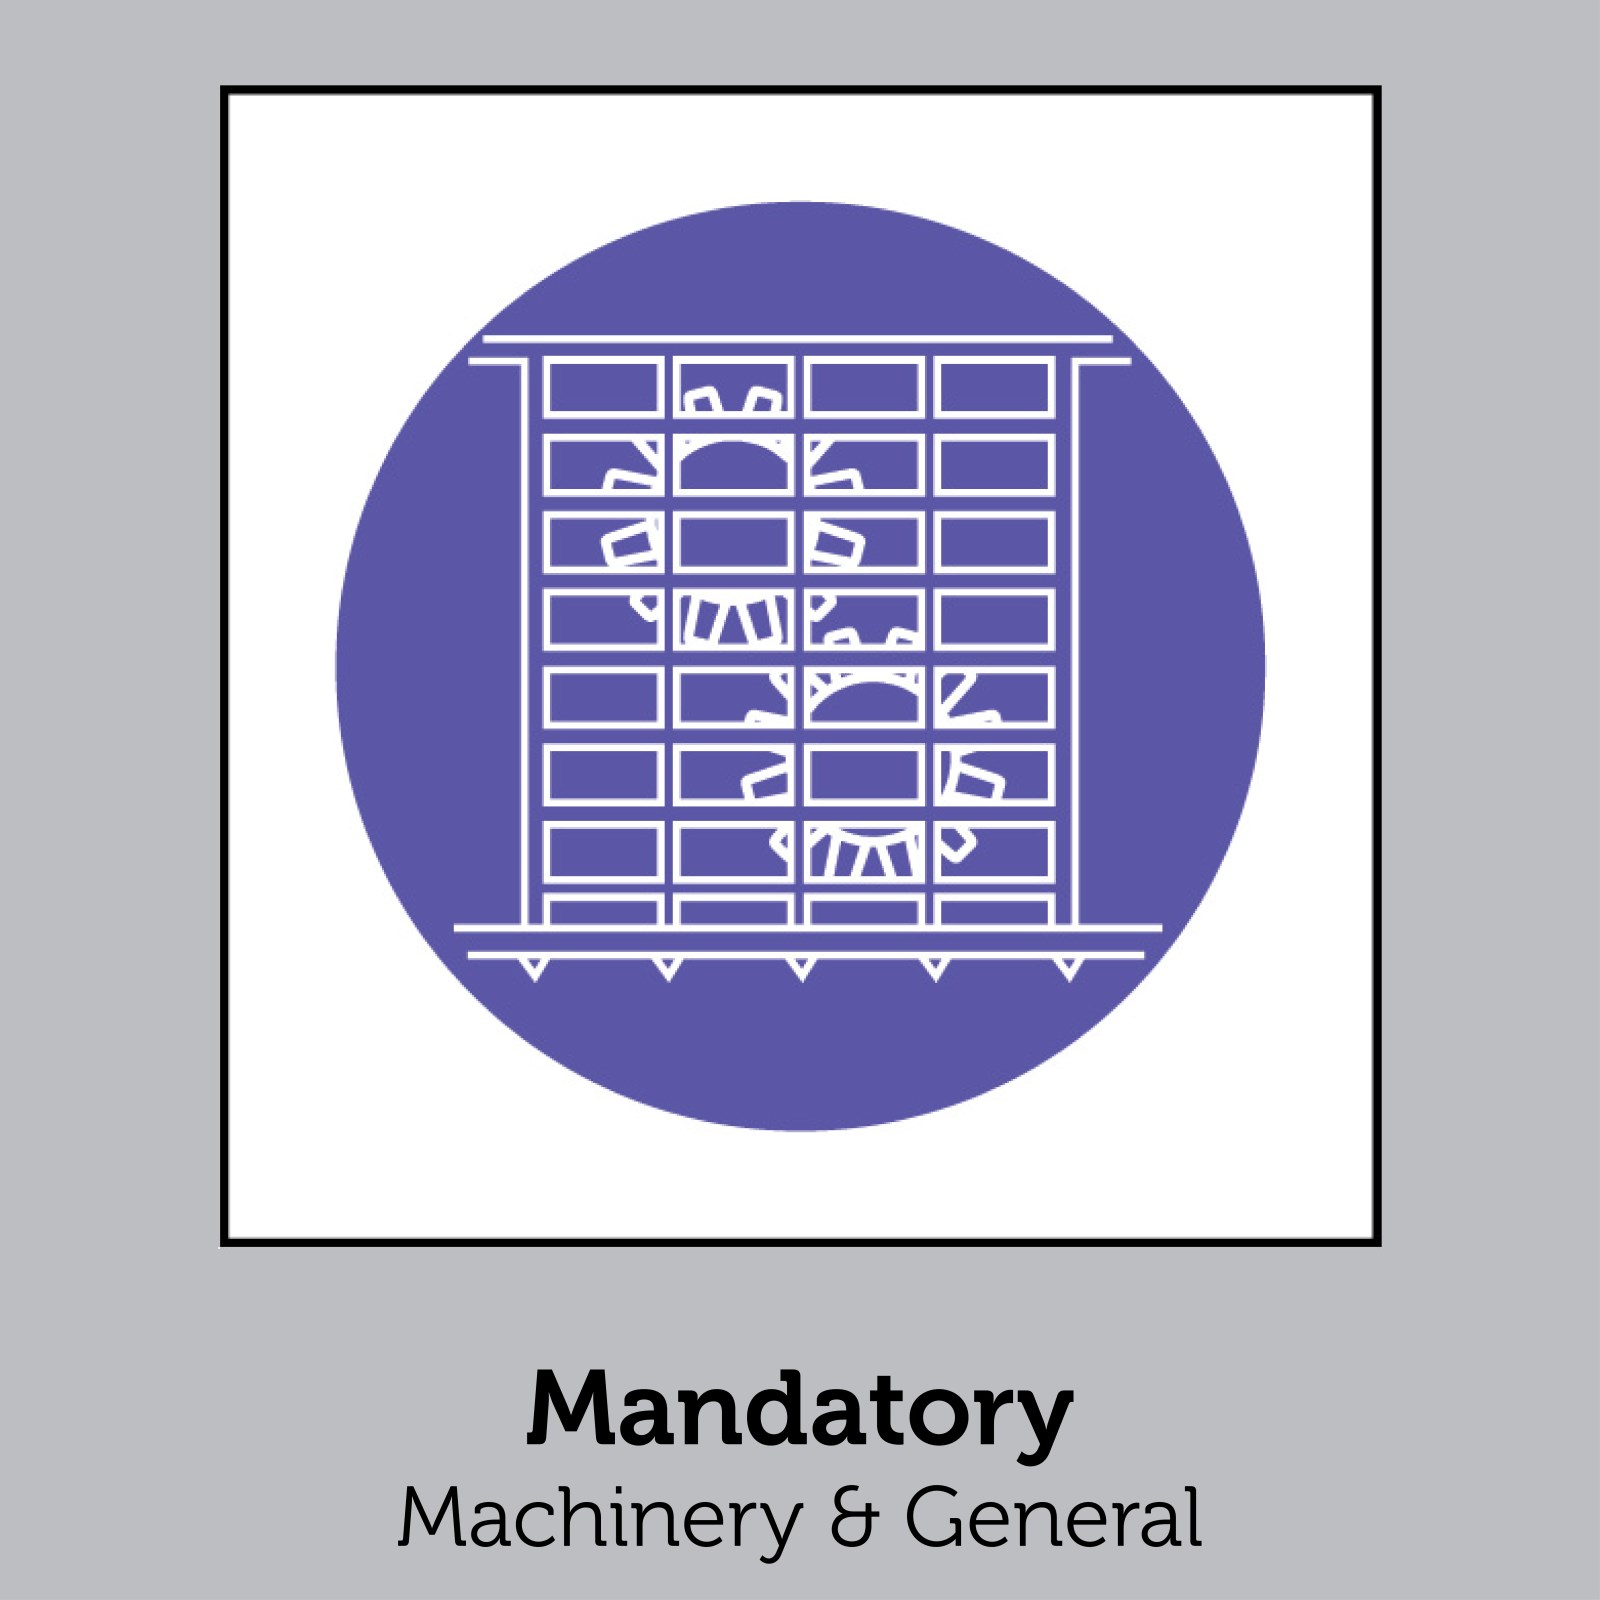 Mandatory - Machinery & General